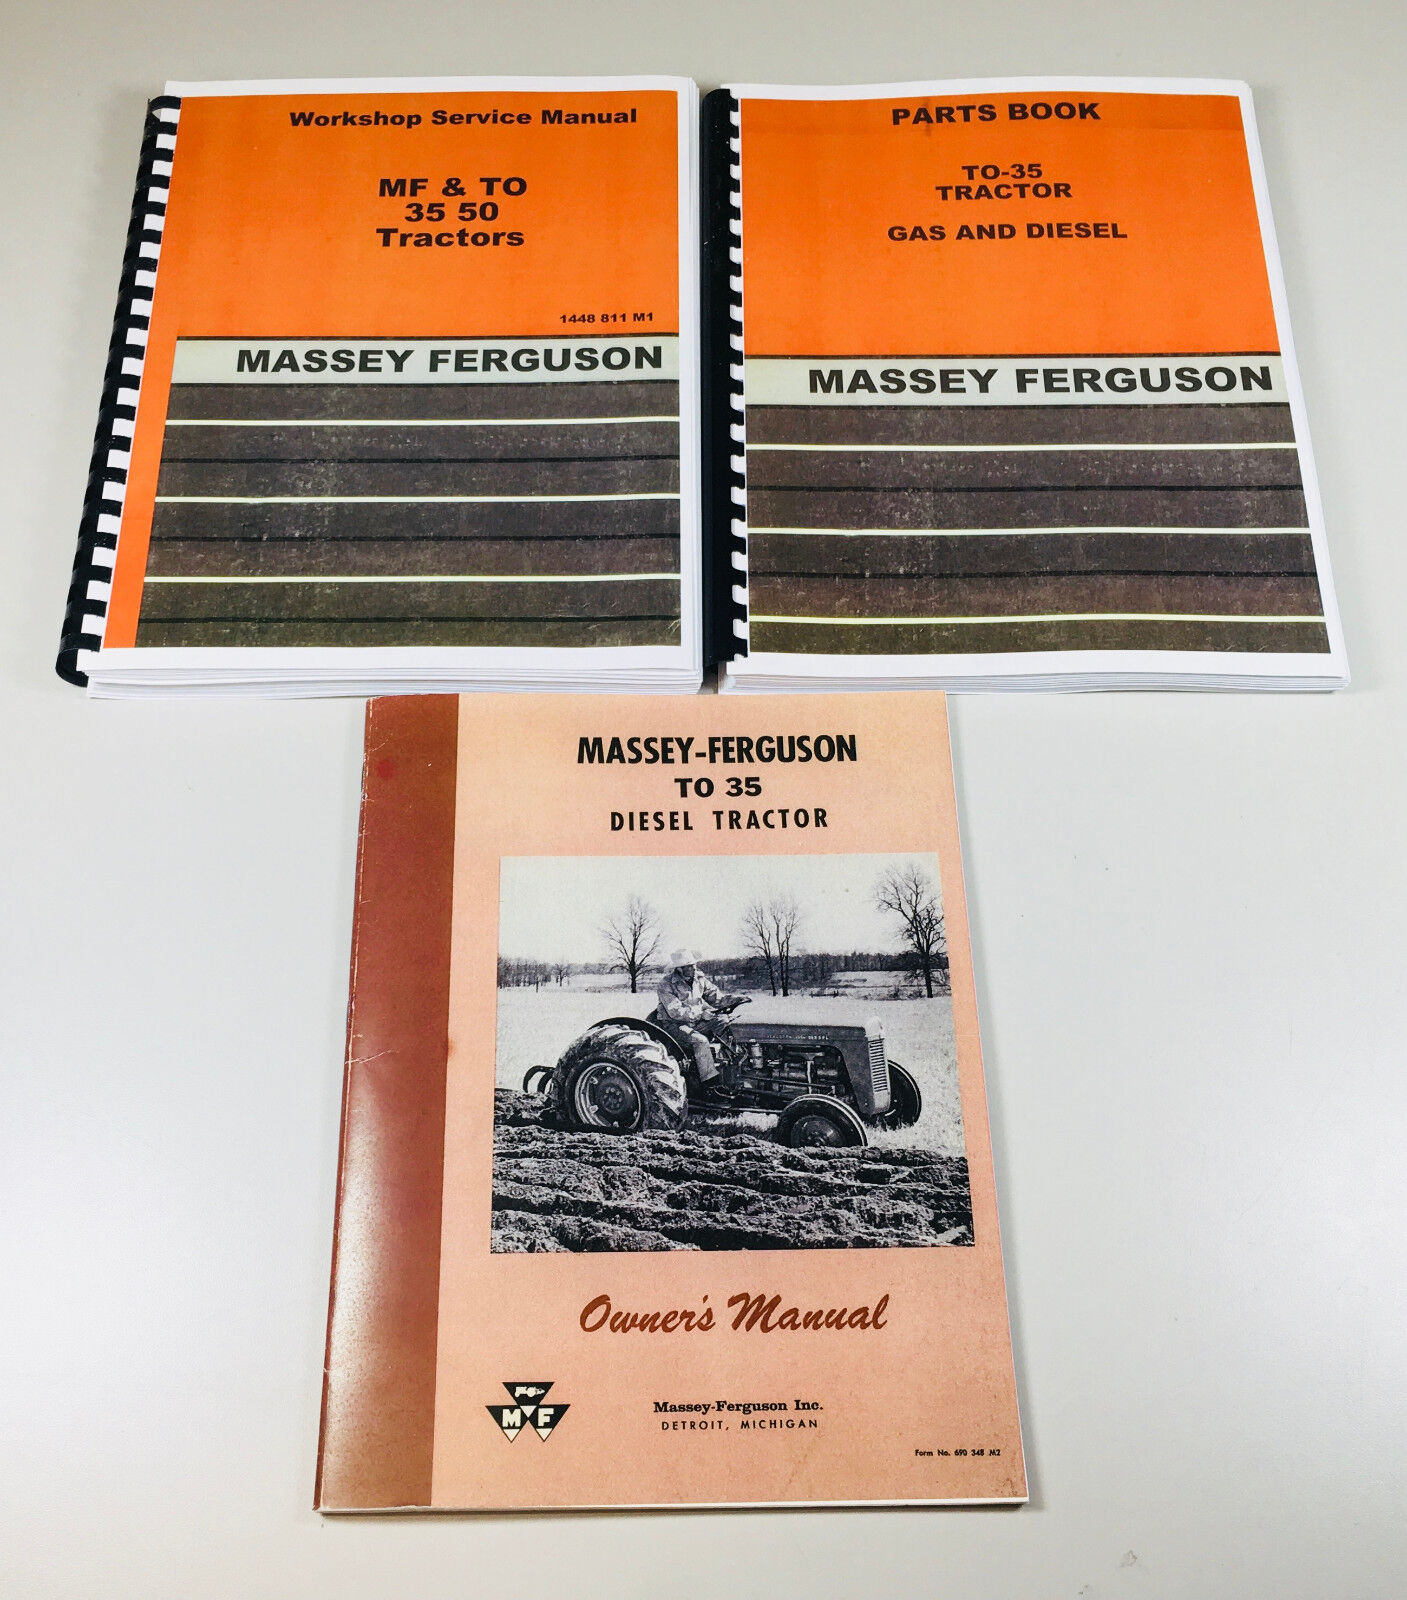 Full Overhaul/Repair manual set